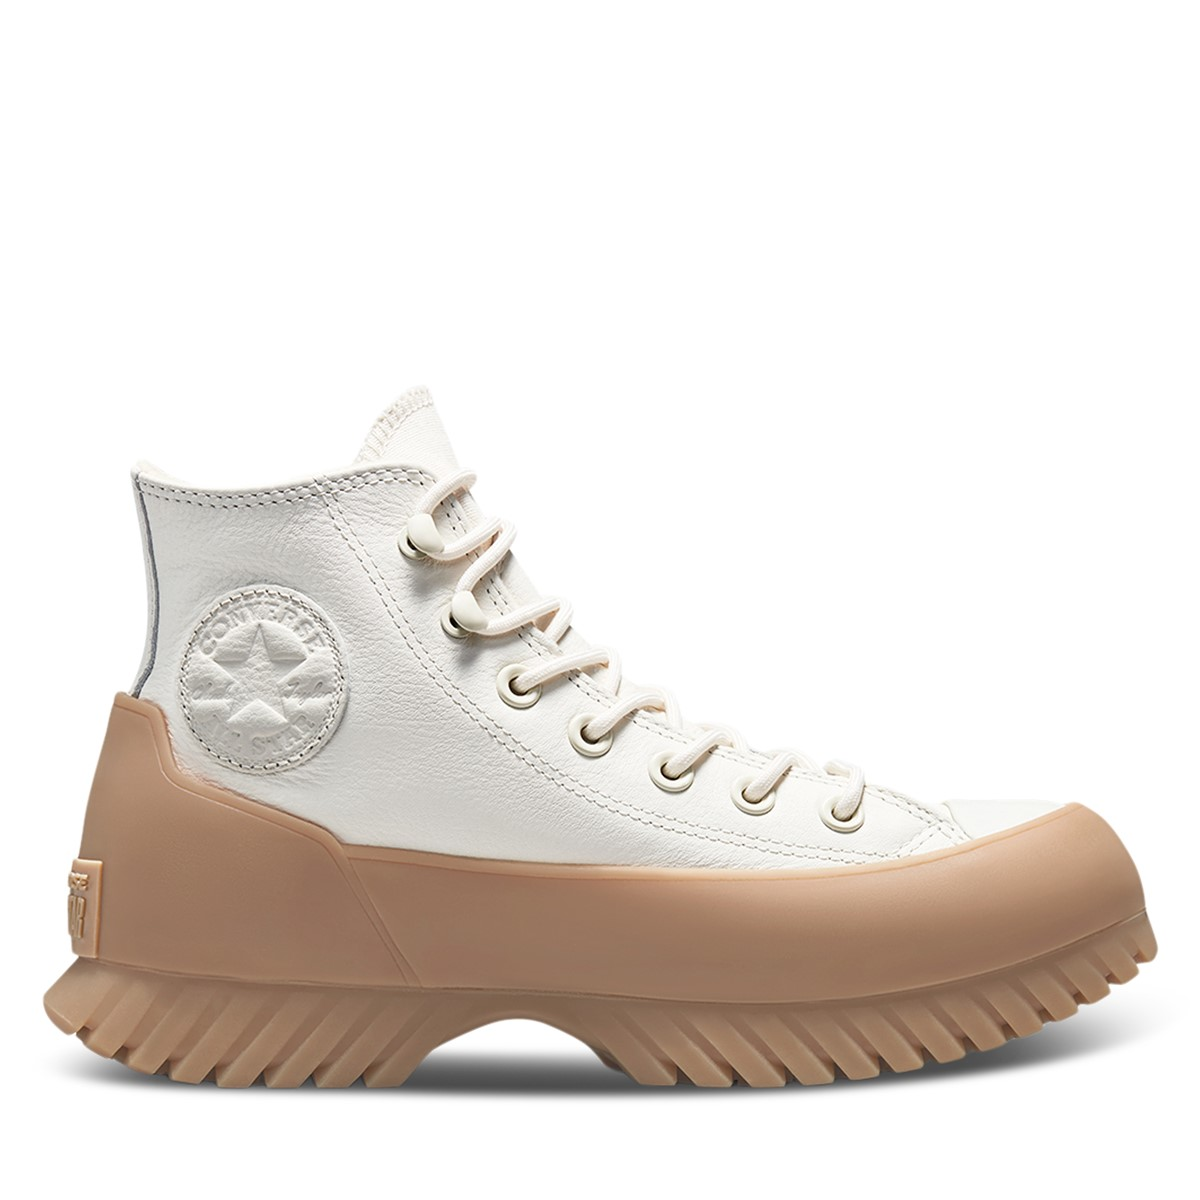 Women's Chuck Taylor All Star Lugged Winter Boots in White/Gum